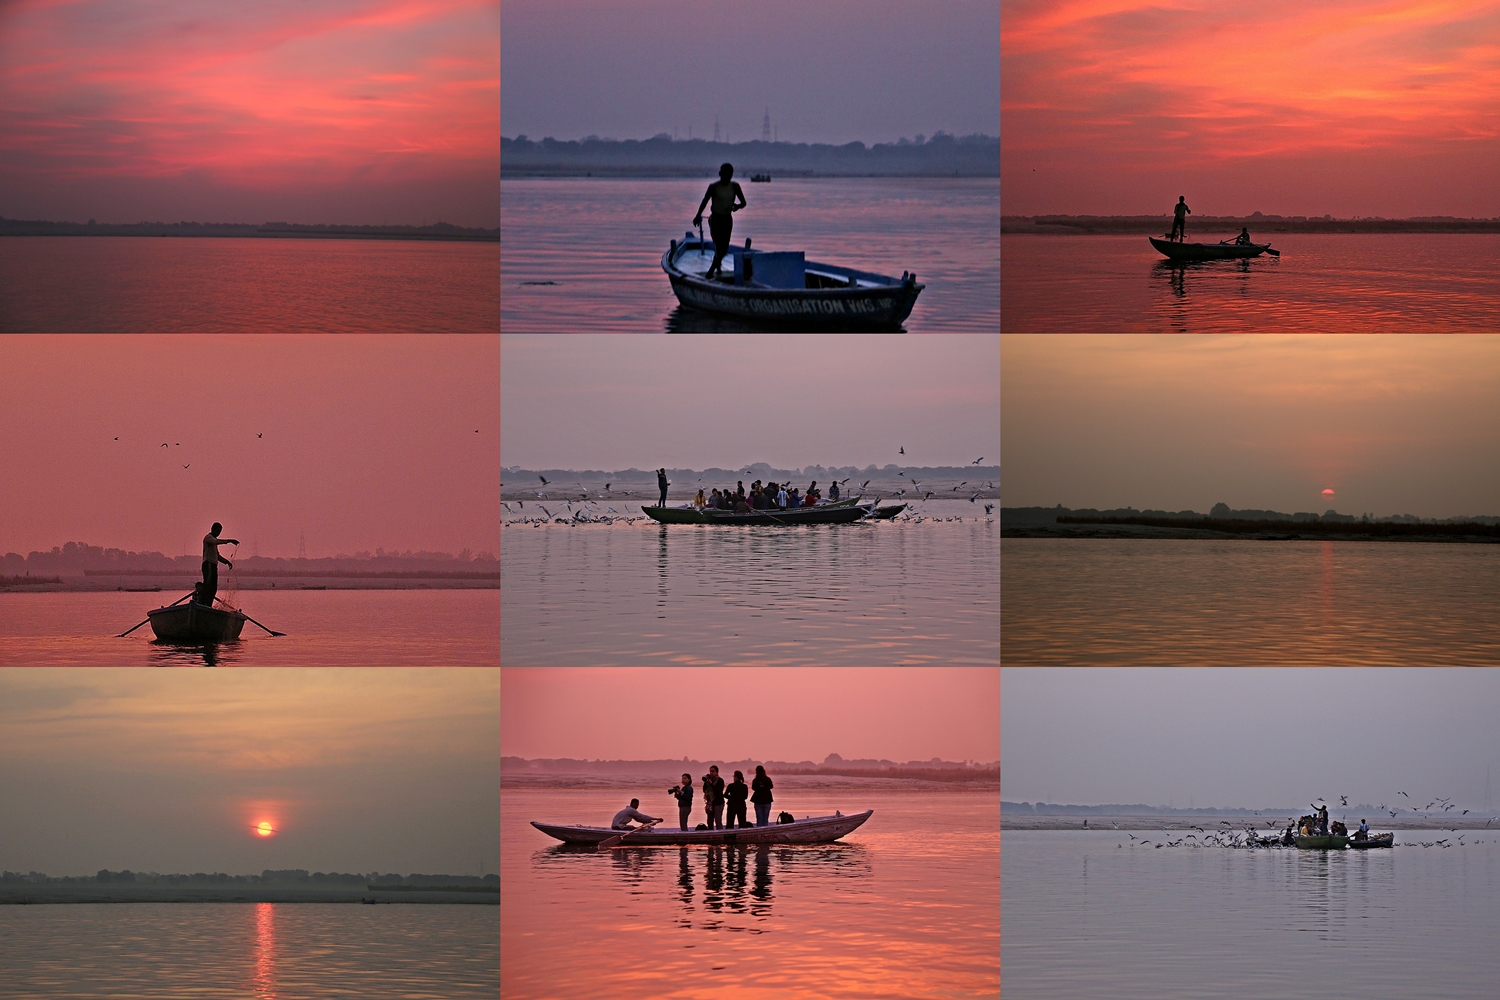 Sunrise over the Ganga, Banaras